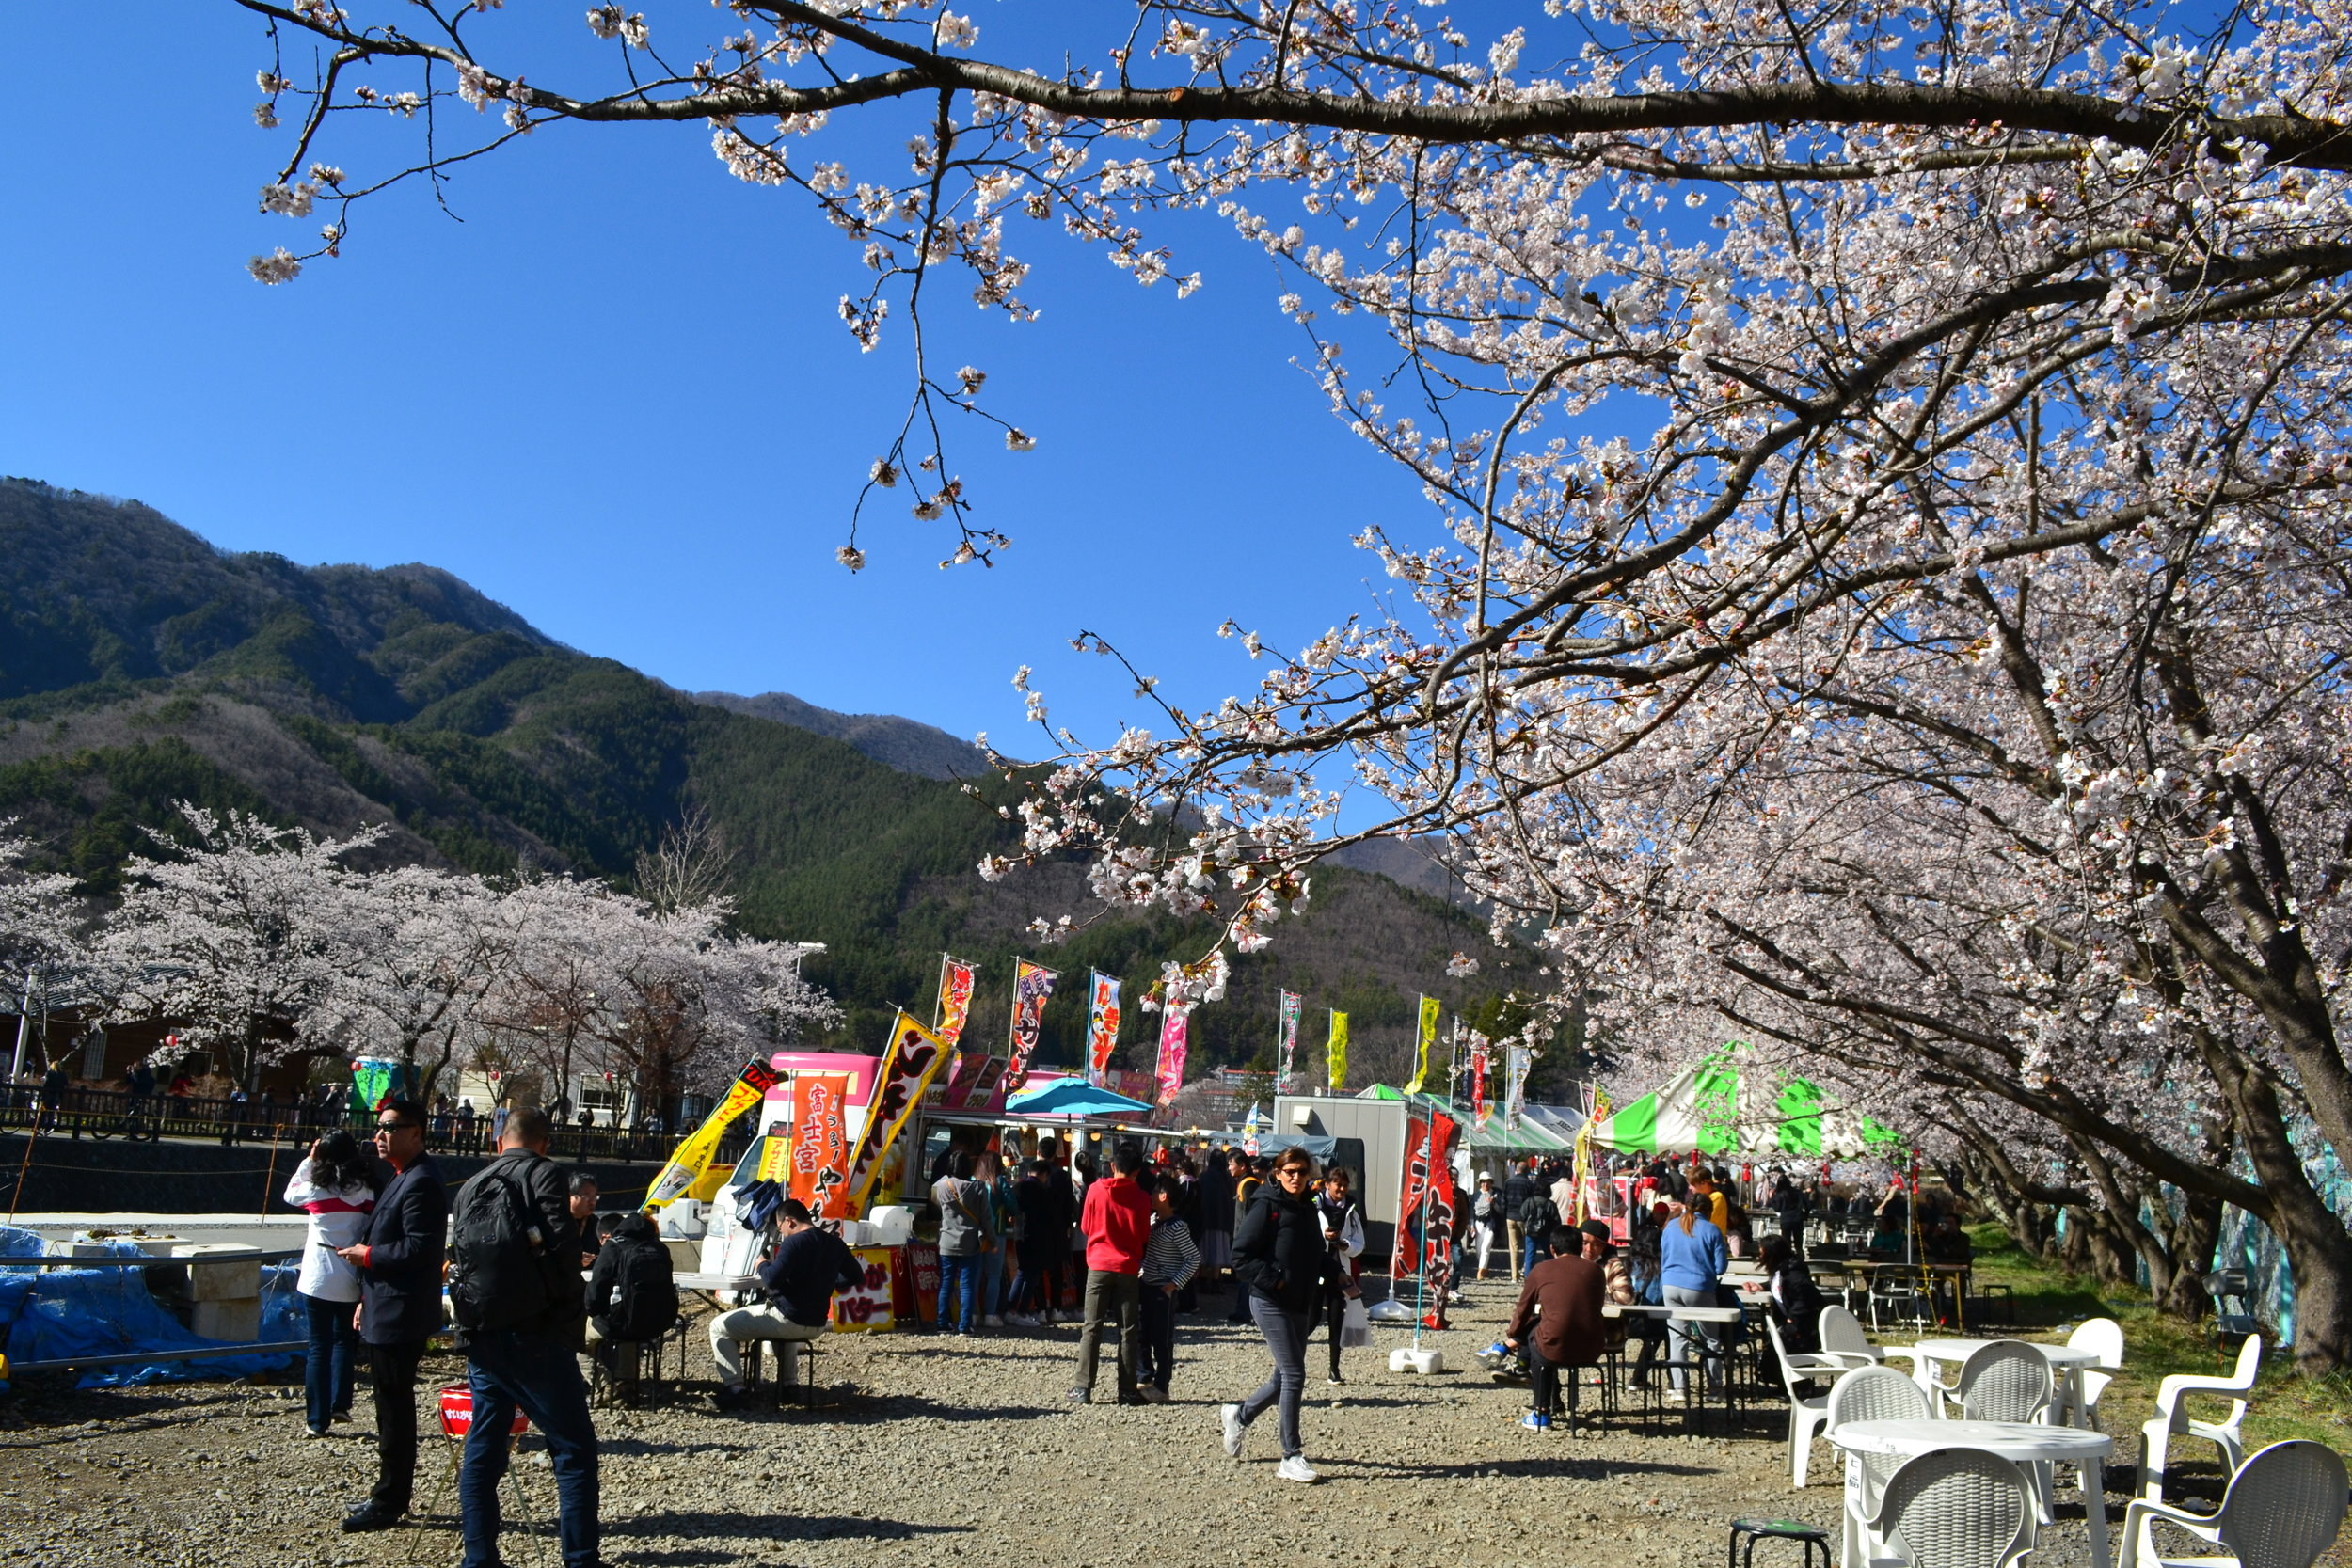 On my walk around Lake Kawaguchi, I encountered a few food stalls that were under the cherry blossoms. Since cherry blossom season is a popular time for tourists to visit the rea, locals take advantage of the opportunity to sell foods and other goods.